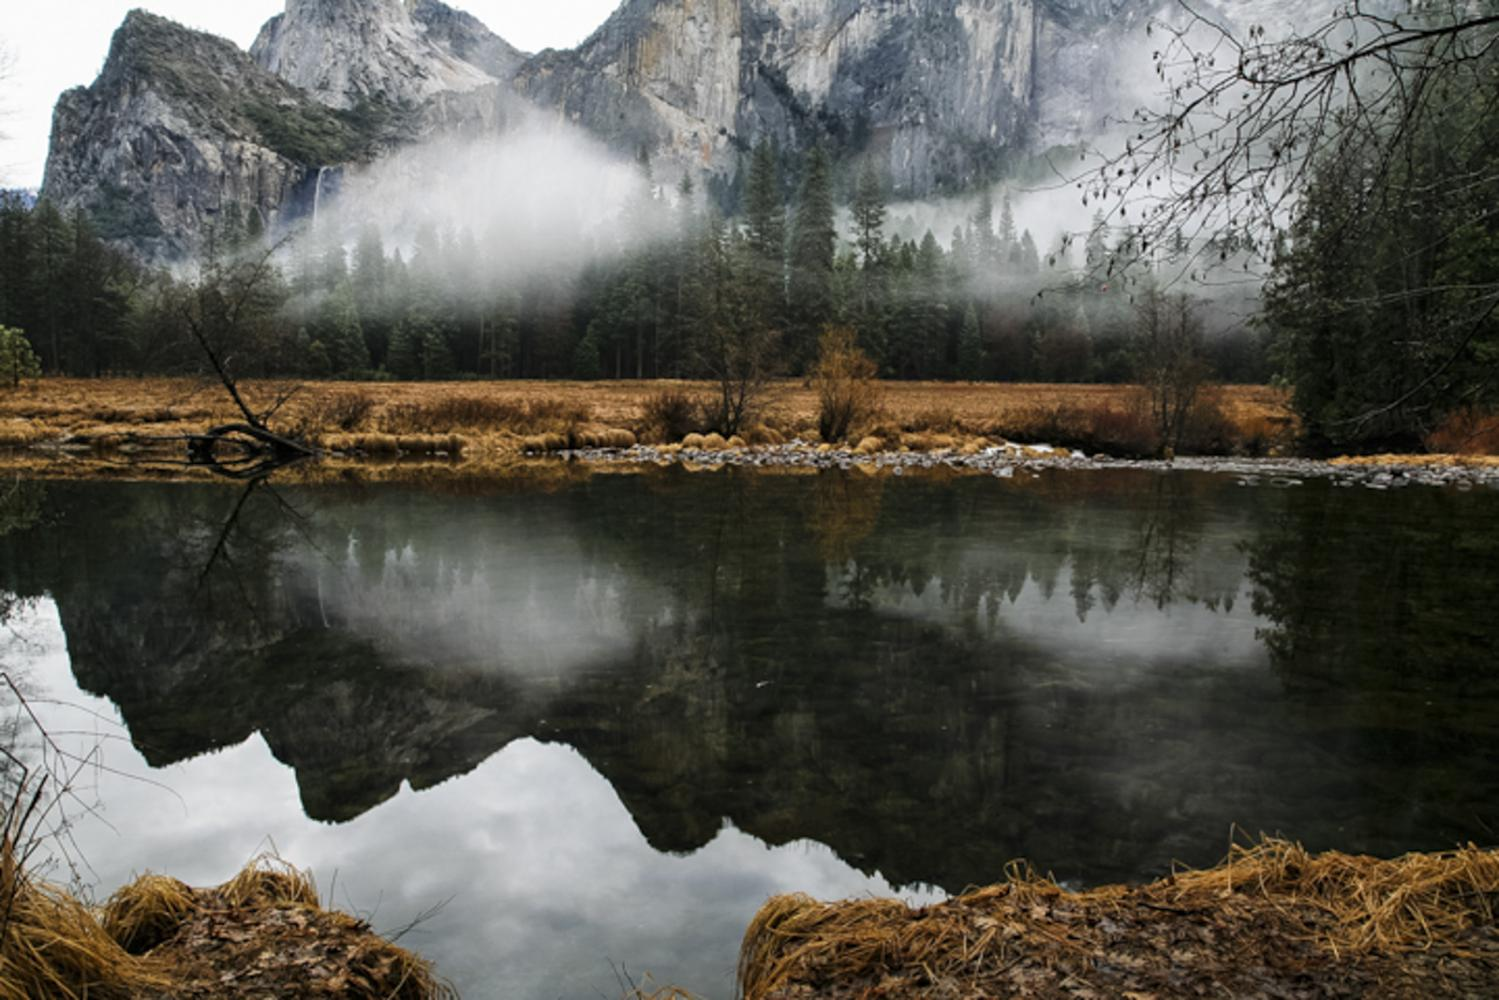 Fog settles in the Valley of Yosemite National Park.